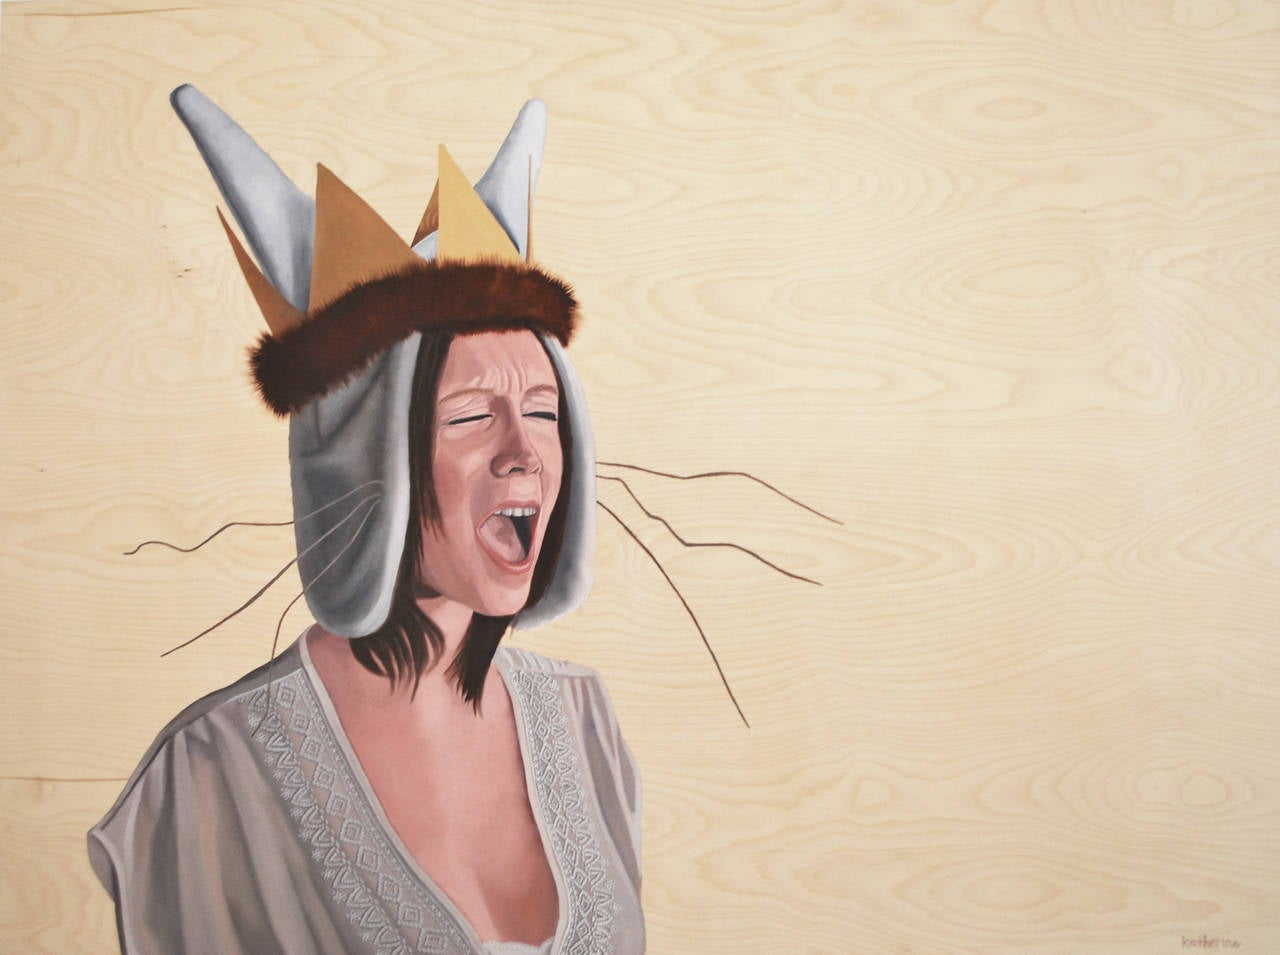 Katherine Rohrbacher - Wild Thing, Painting For Sale at